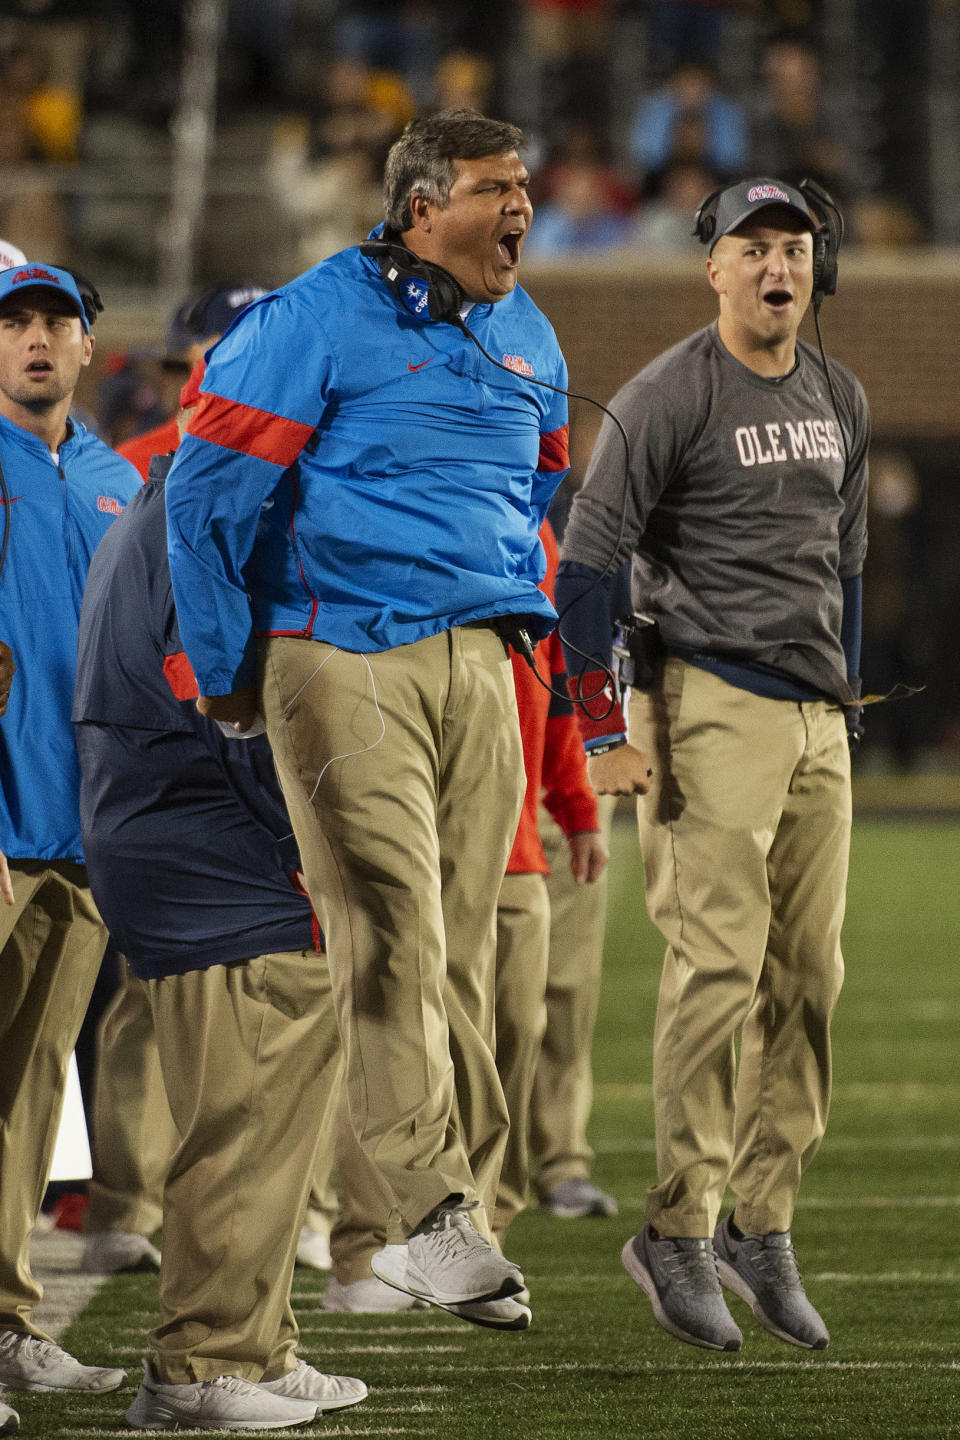 Mississippi head coach Matt Luke, left, jumps in the air during the final seconds of the second quarter of an NCAA college football game against Missouri Saturday, Oct. 12, 2019, in Columbia, Mo. (AP Photo/L.G. Patterson)